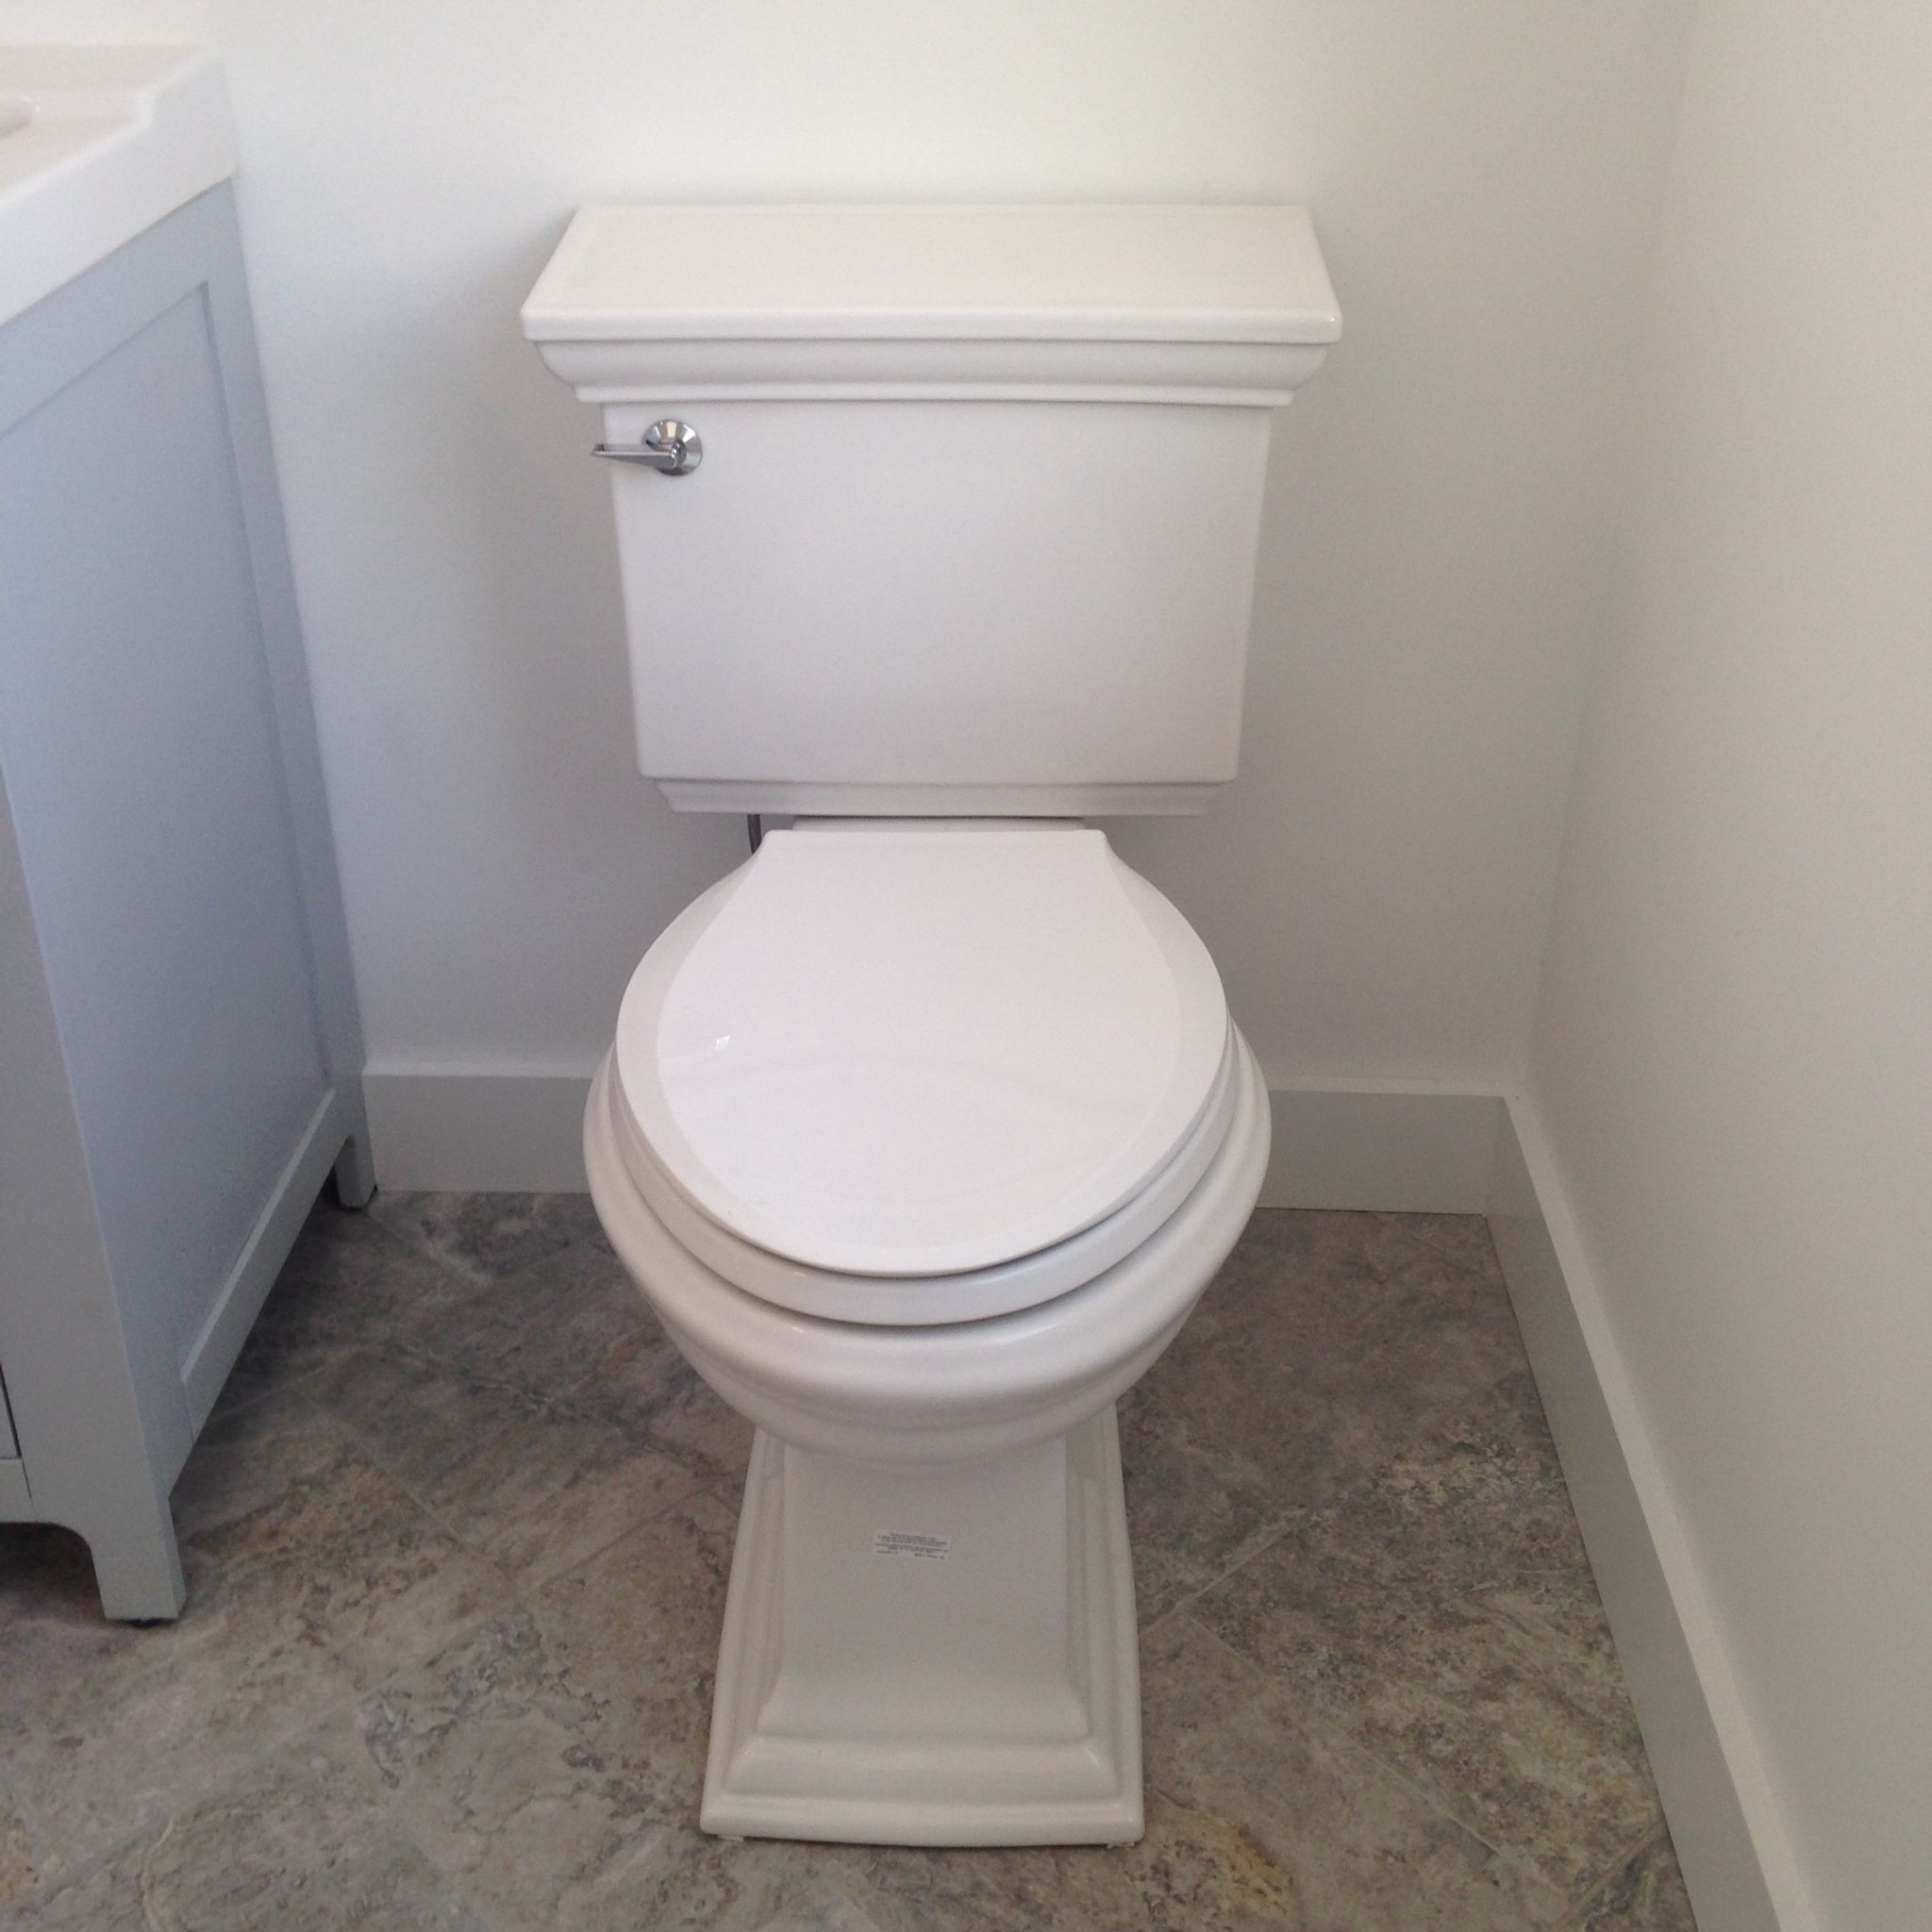 Kohler toilet with soft close seat. | Kohler toilet, Powder room